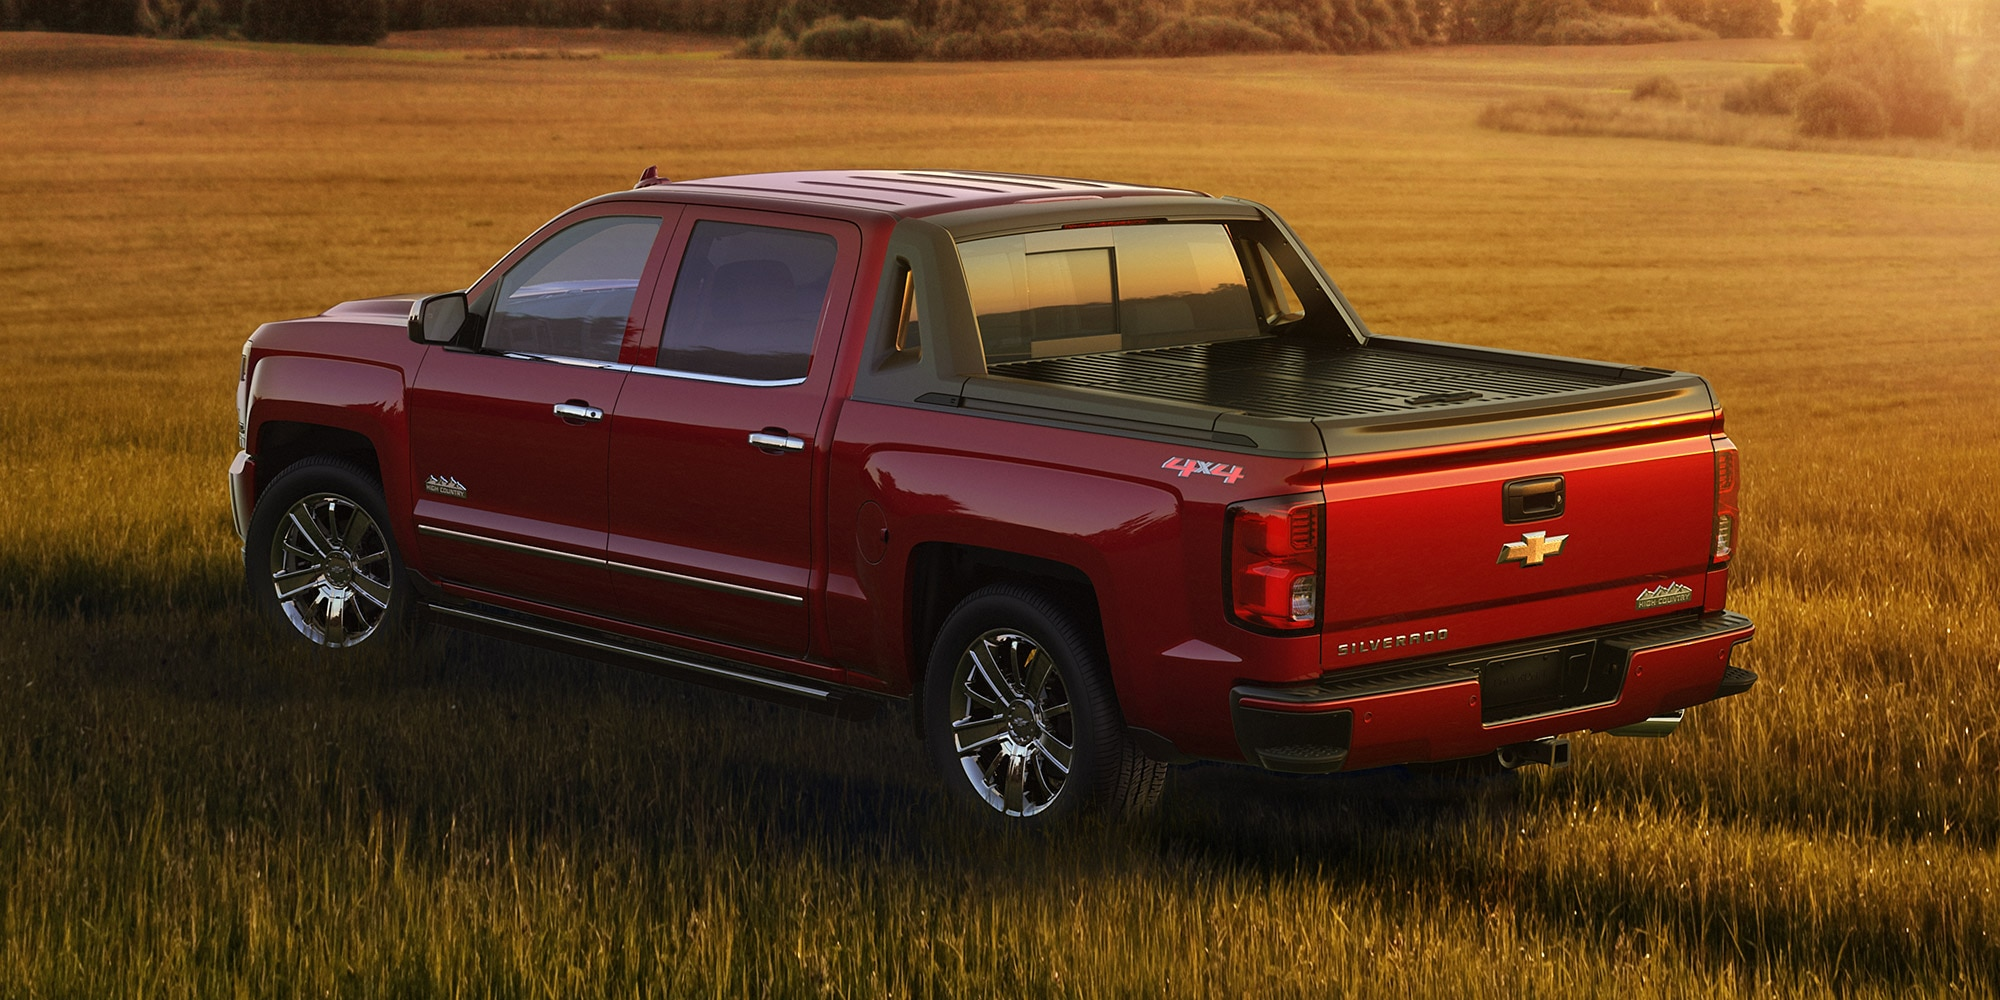 Ediciones especiales de Chevy Silverado: High Desert